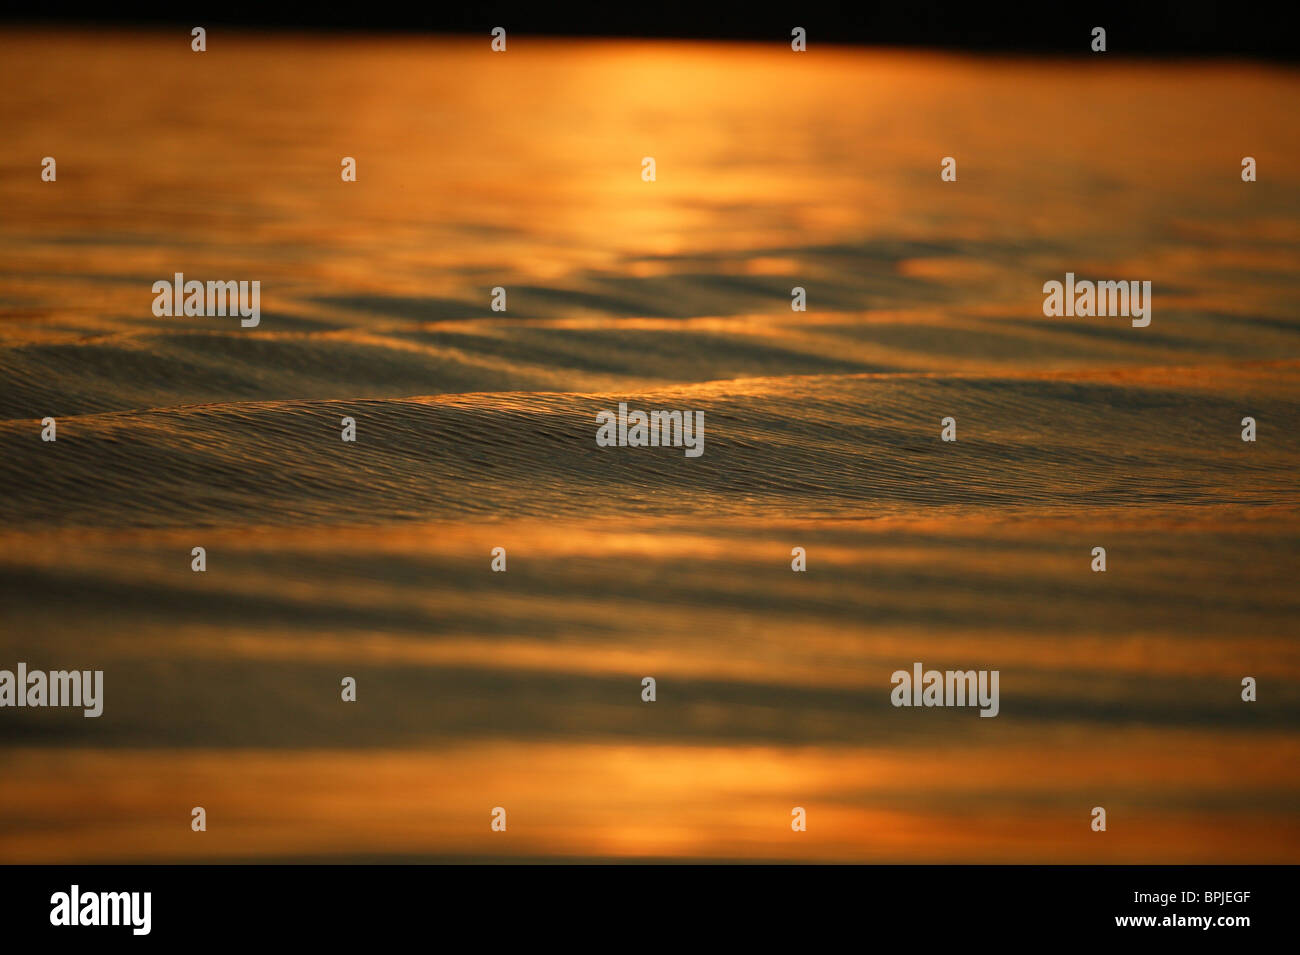 Water surface in the evening light, Lake Chiemsee, Chiemgau, Bavaria, Germany Stock Photo